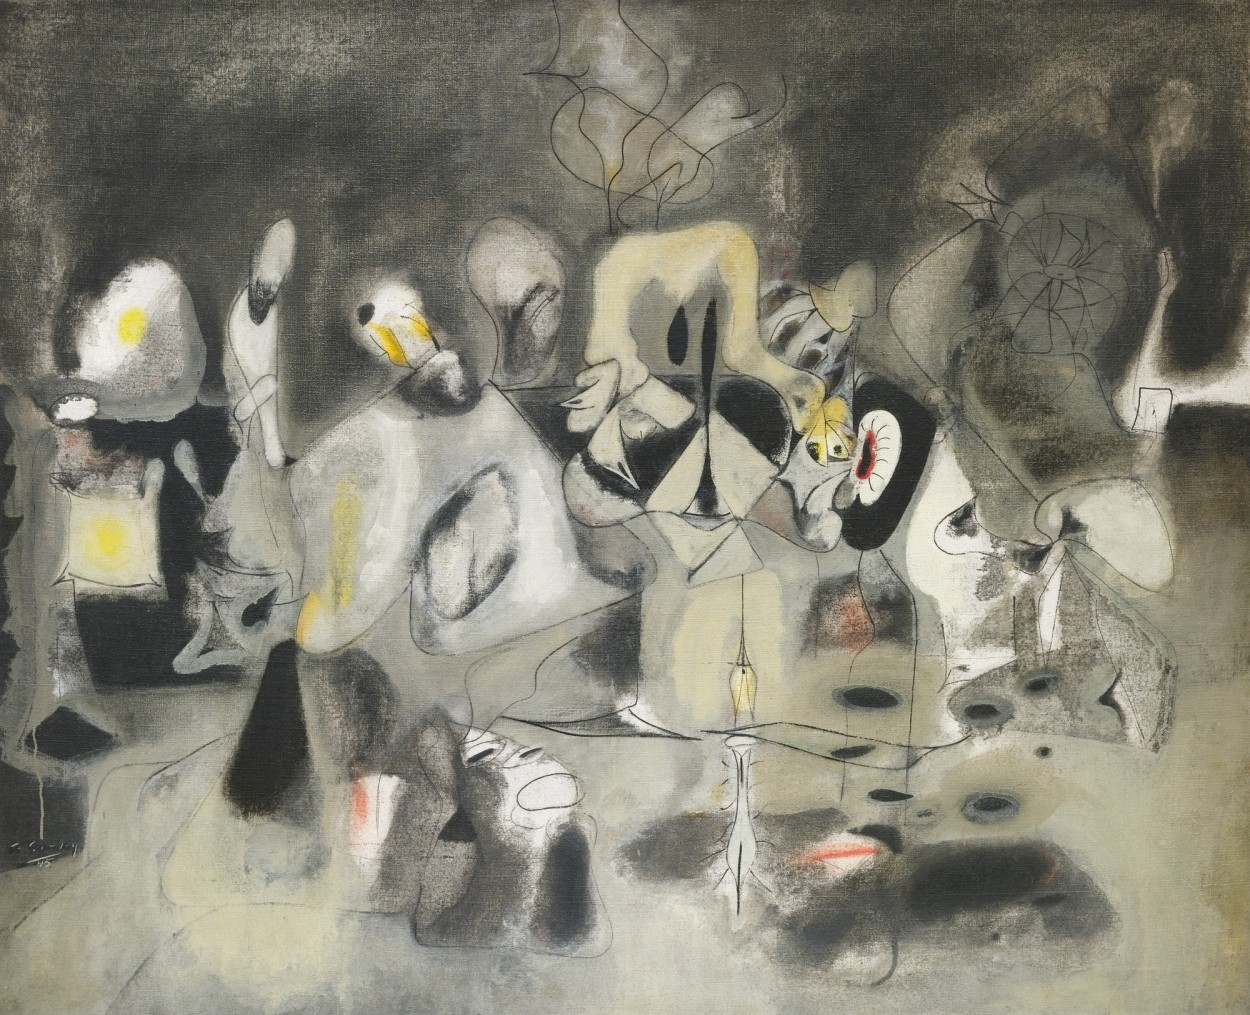 Diary of a Seducer by Arshile Gorky via DailyArt app, your daily dose of art getdailyart.com